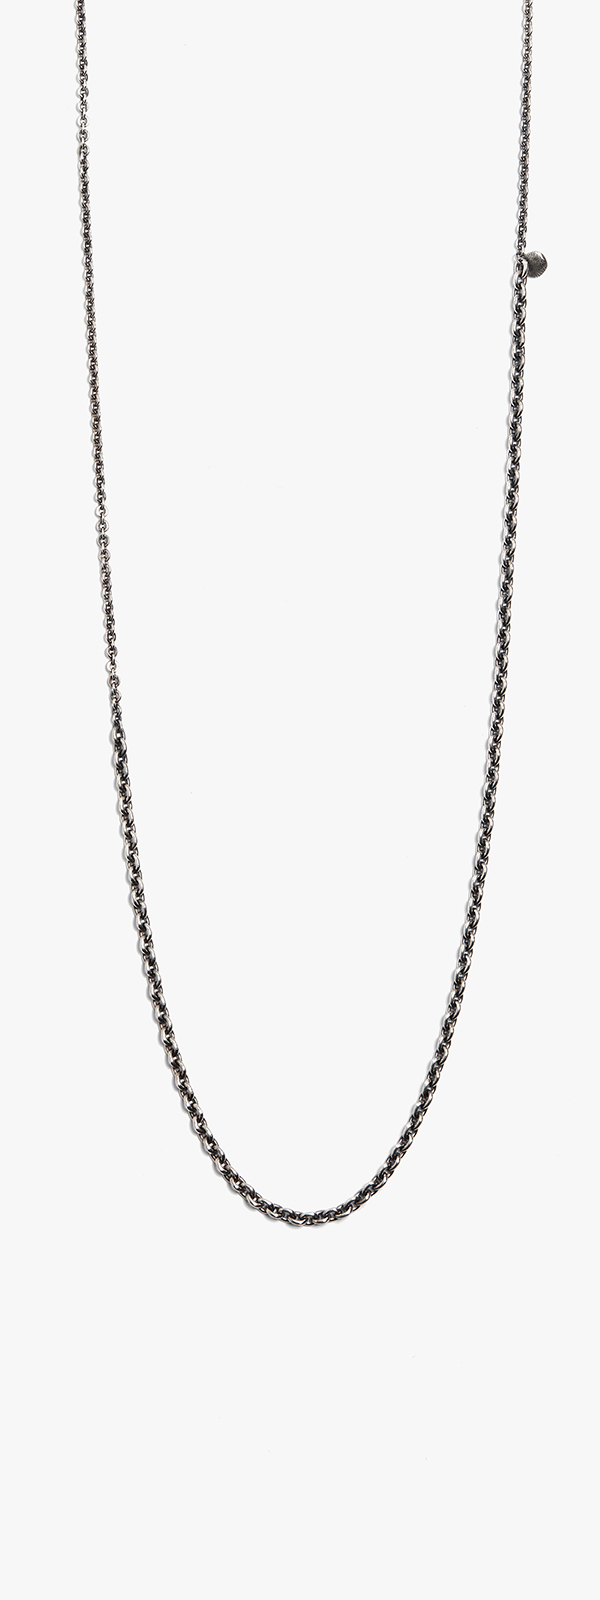 Image of Small / Medium Cable Necklace 058